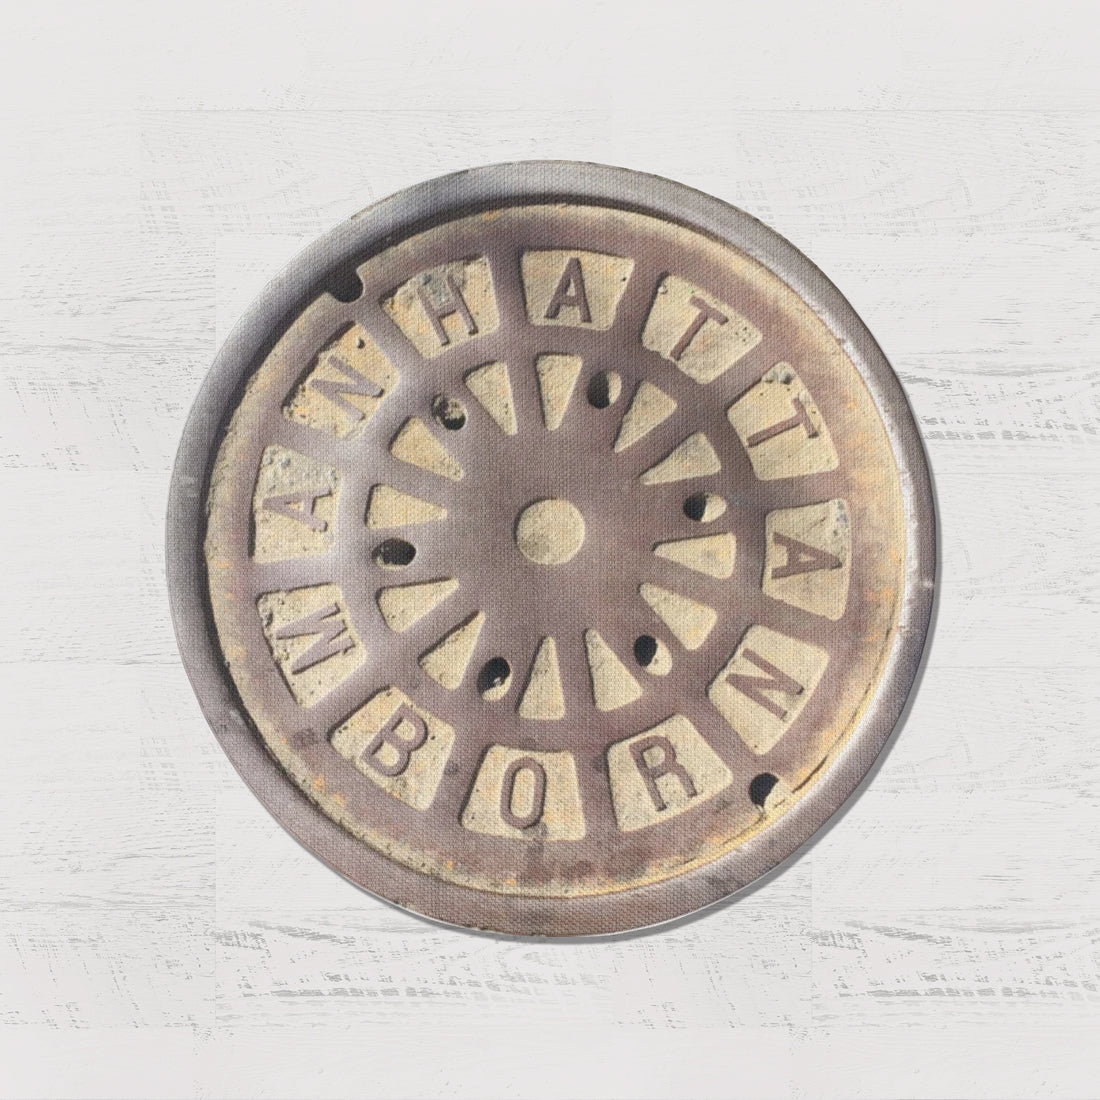 NYC SERIES - Sewer Cover Doormat, Trivet, Coaster - Manhattan